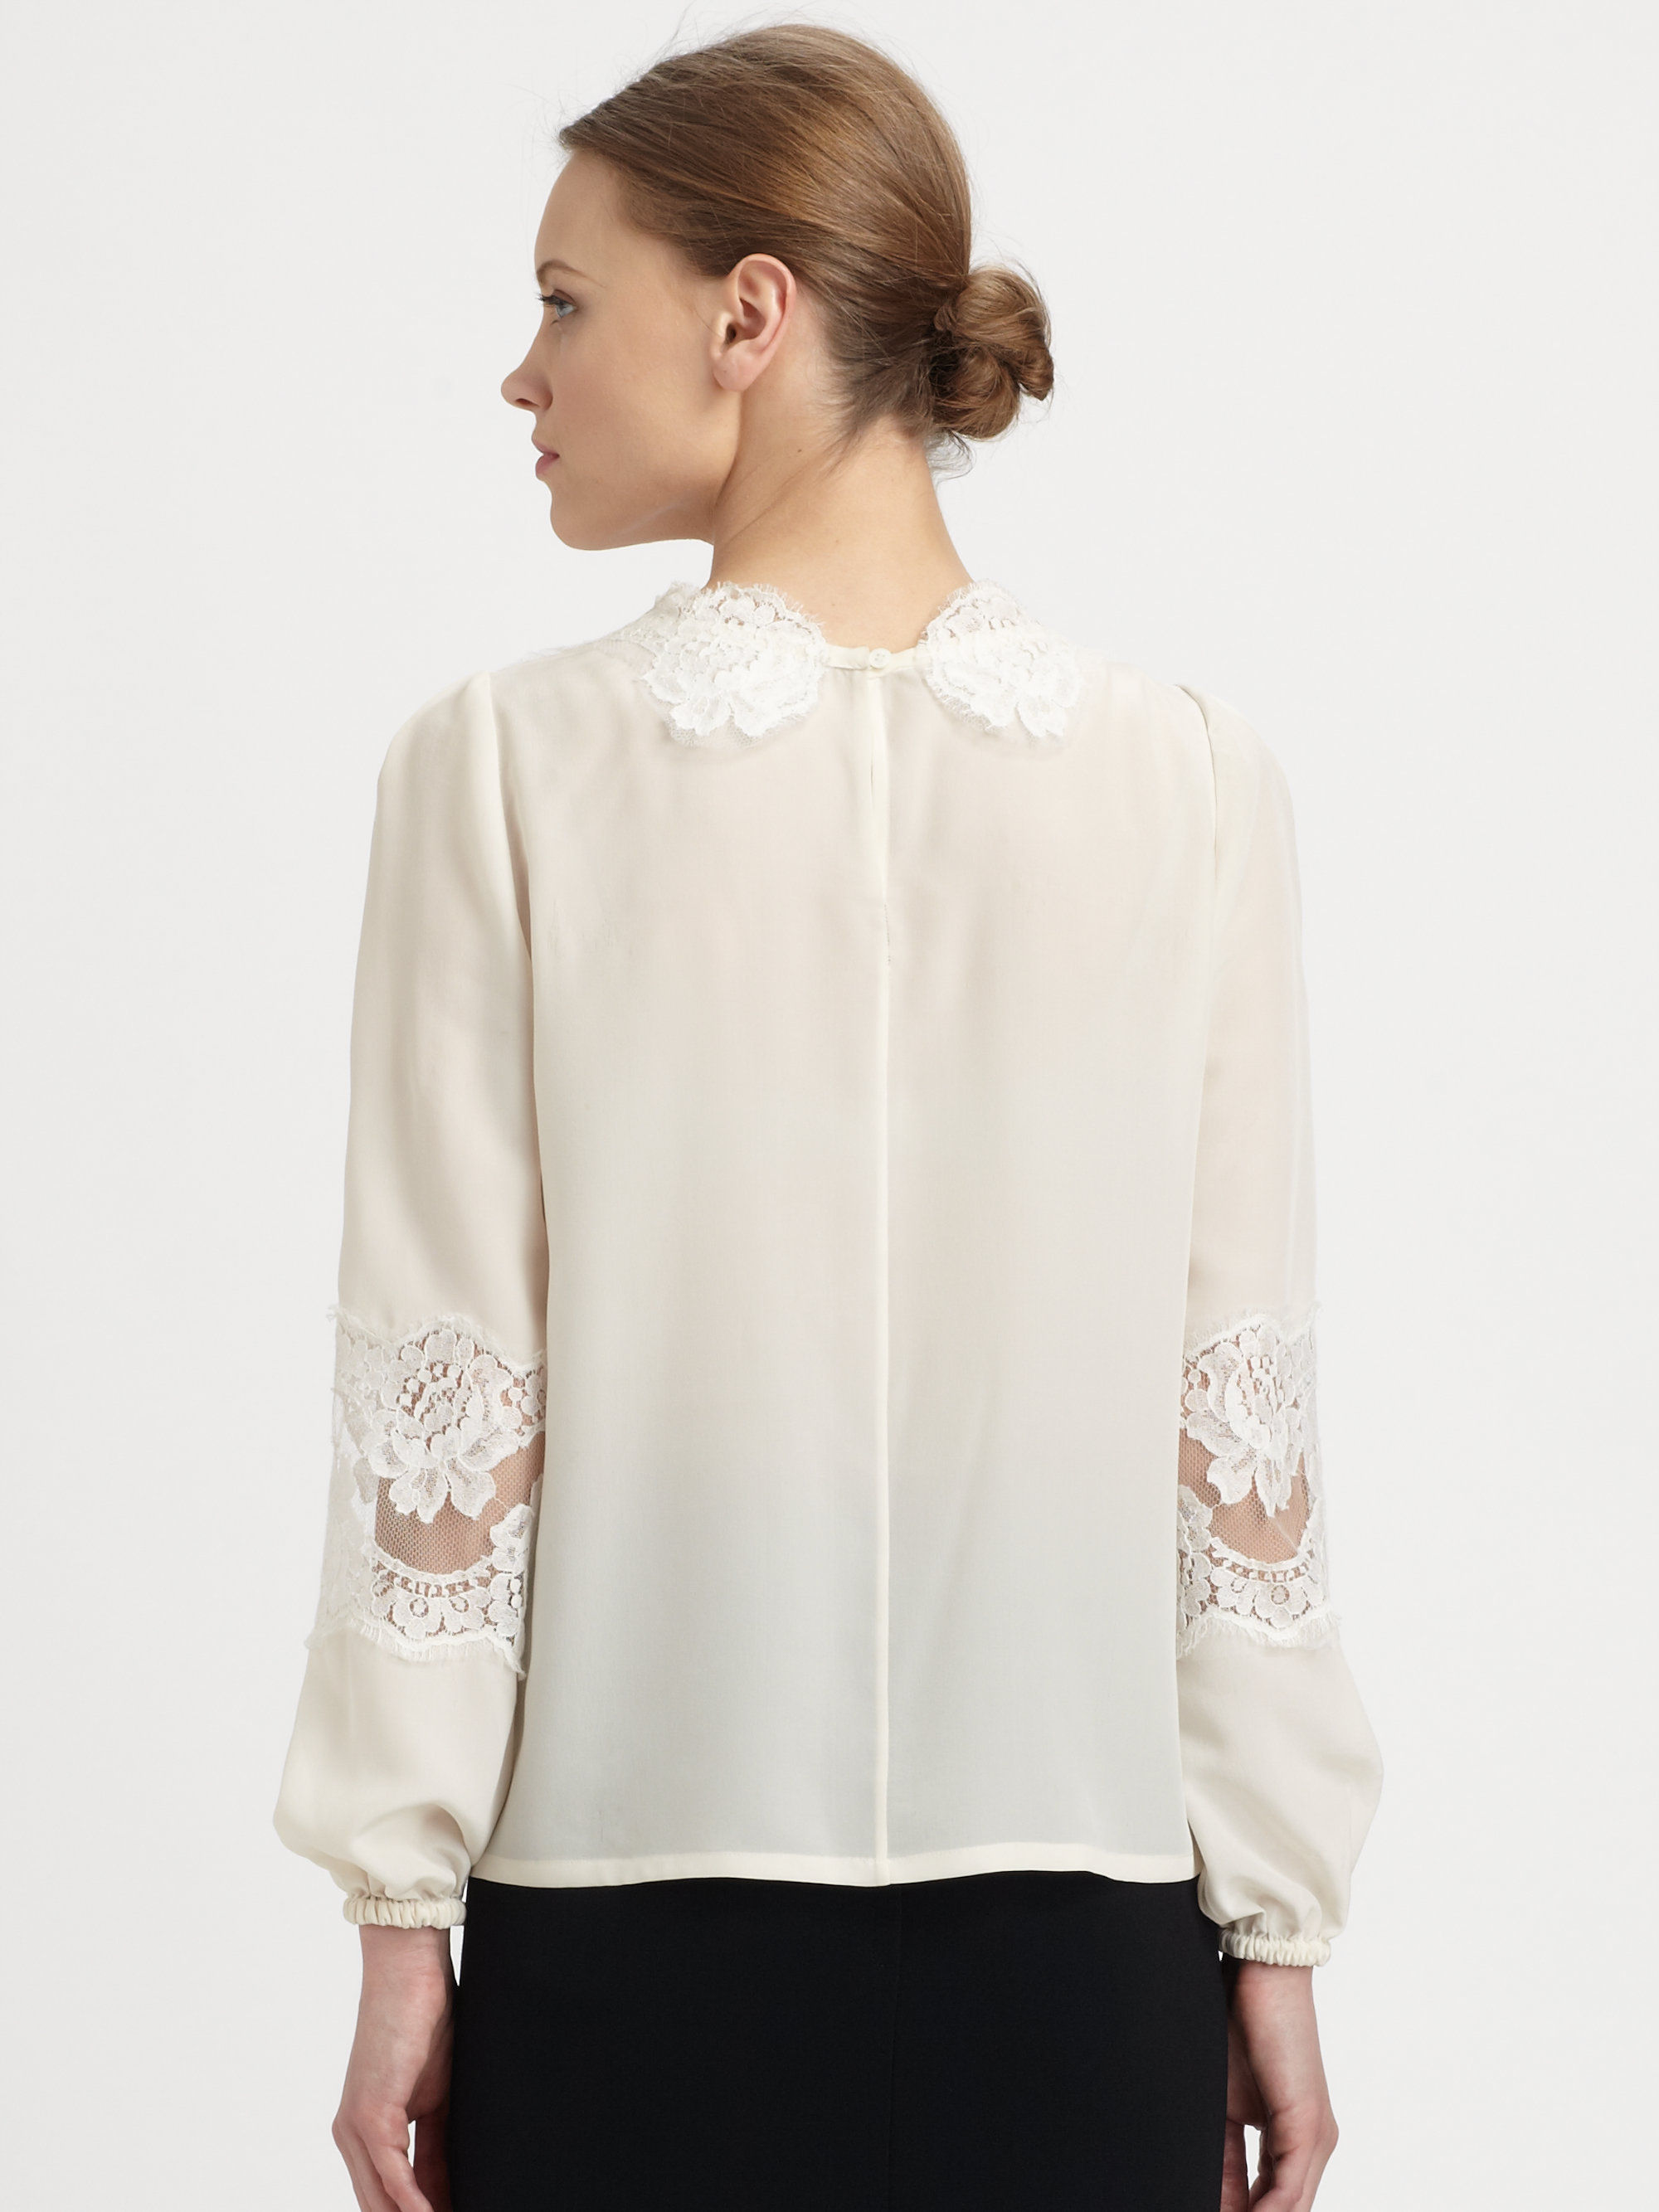 769ad4f77d7c2a Lyst - Dolce   Gabbana Lace Detail Silk Blouse in White